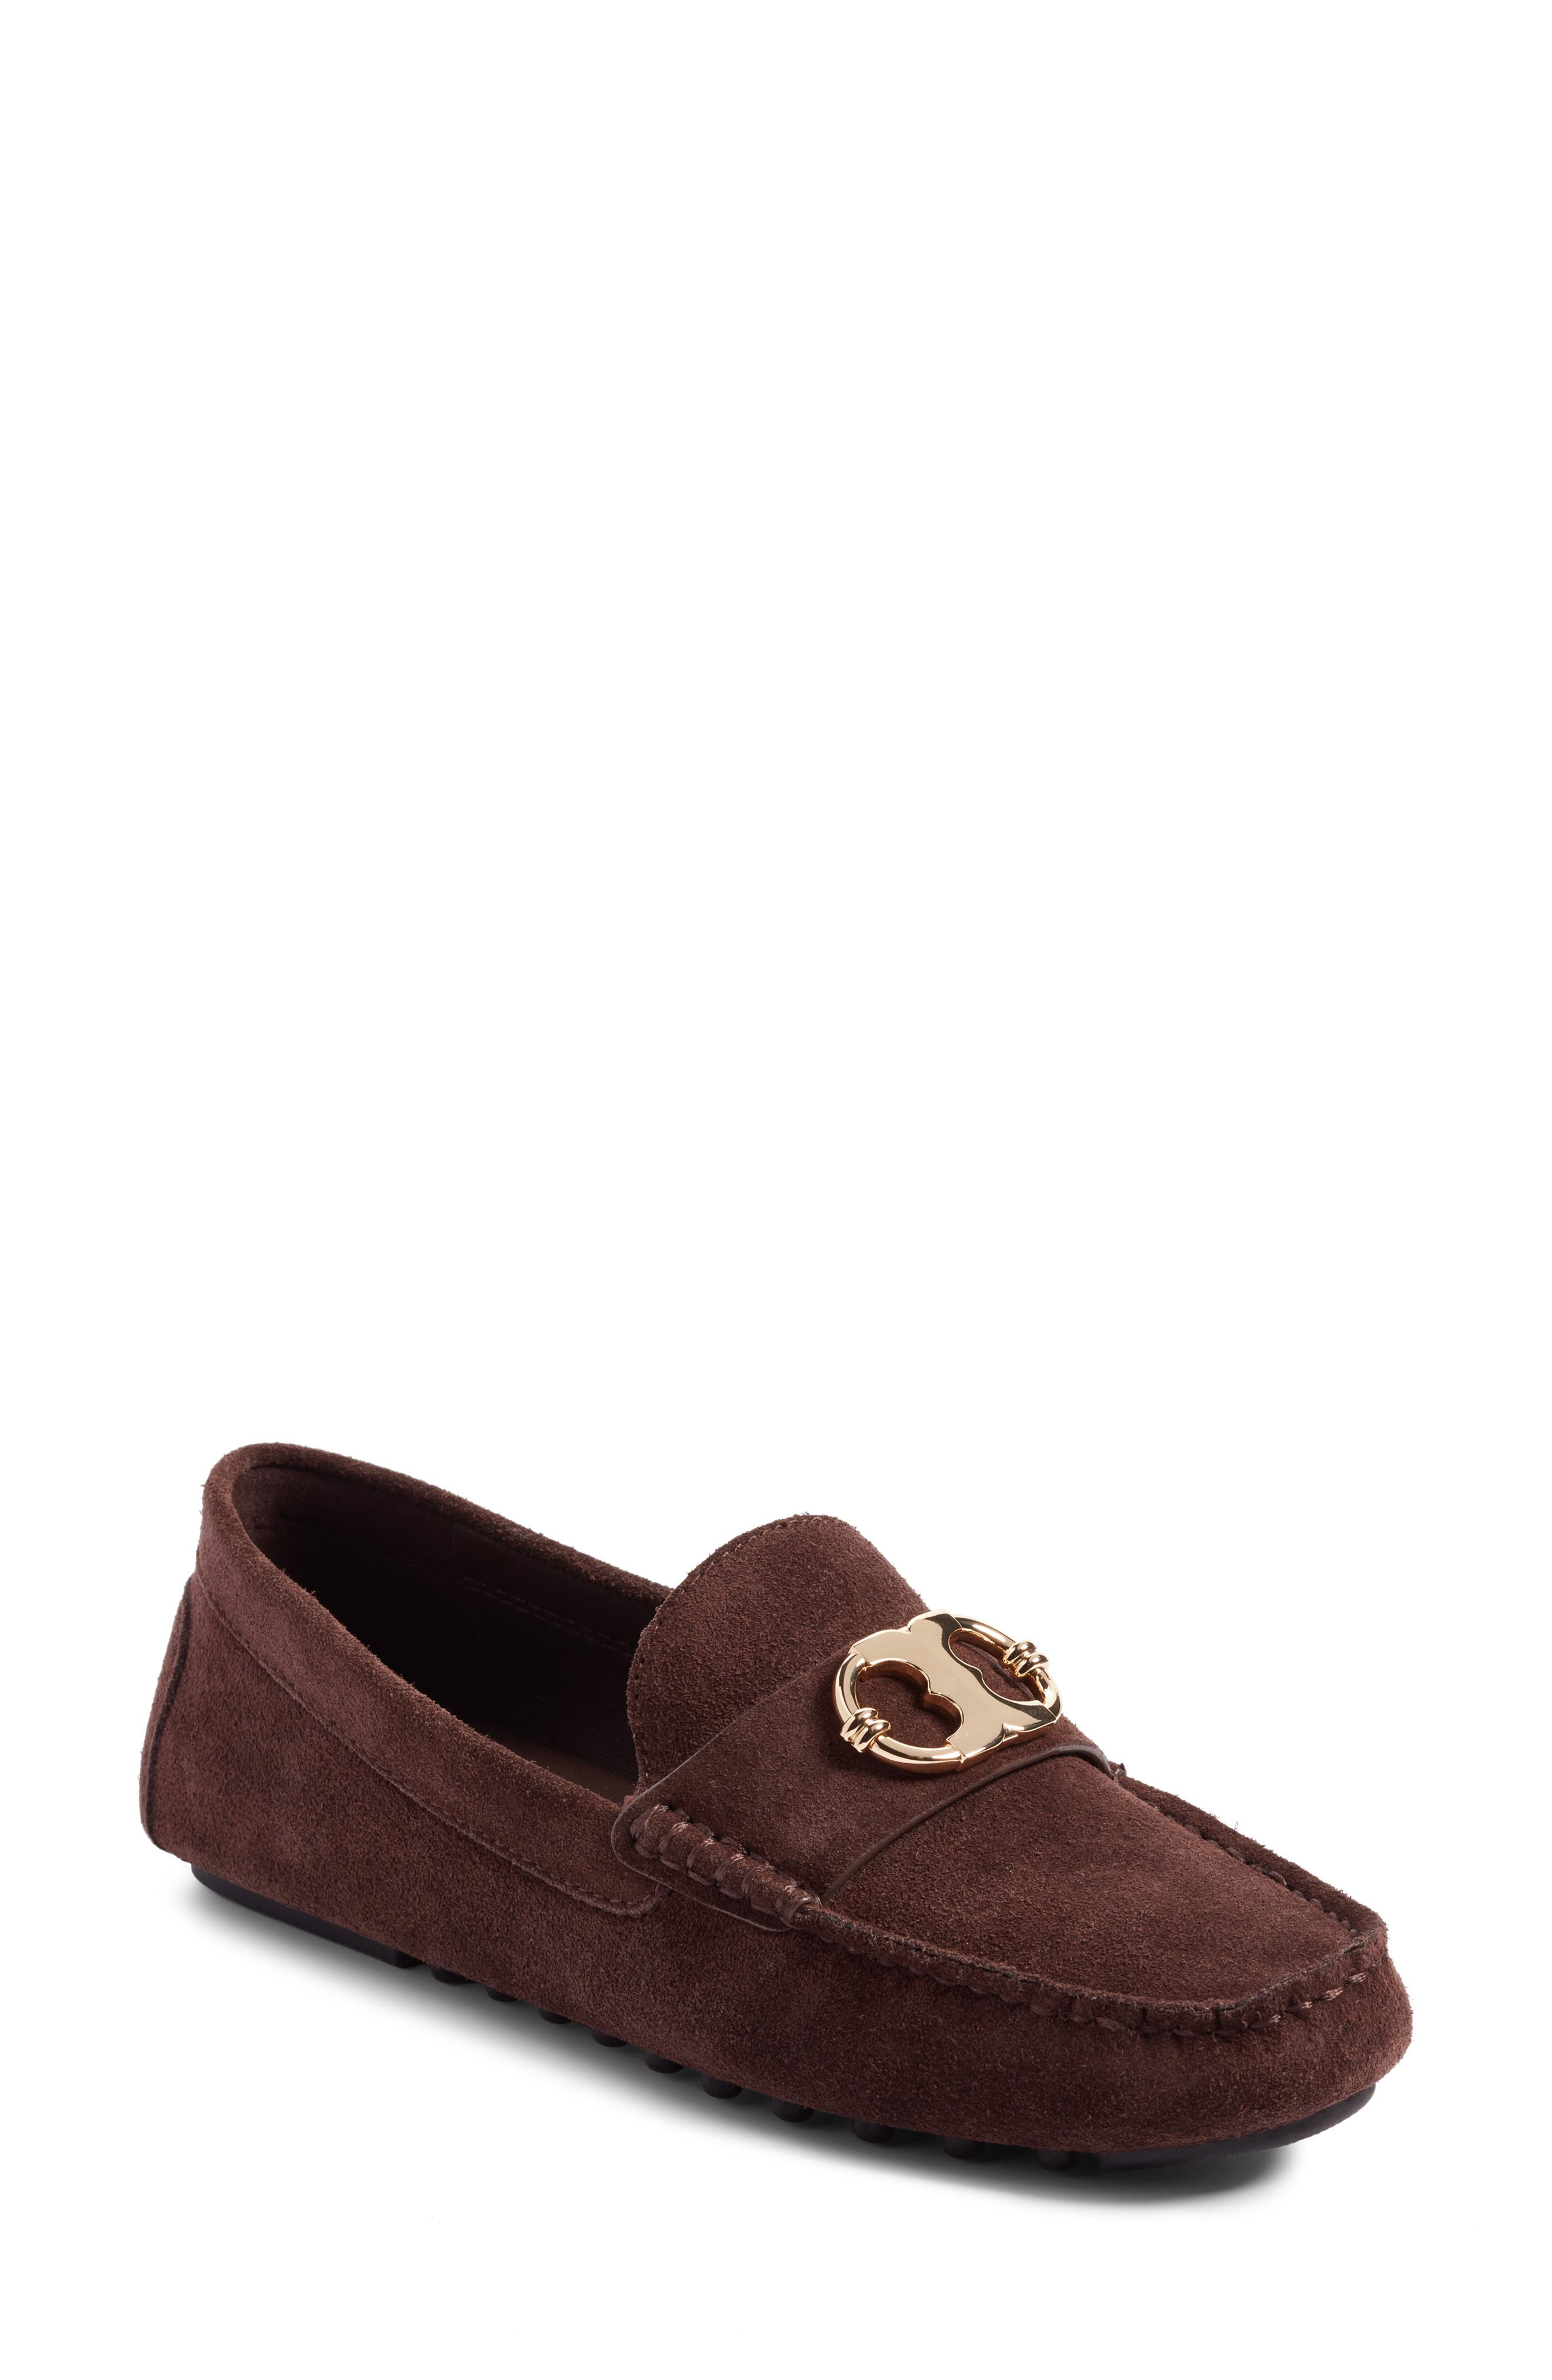 Gemini Driving Loafer,                             Main thumbnail 3, color,